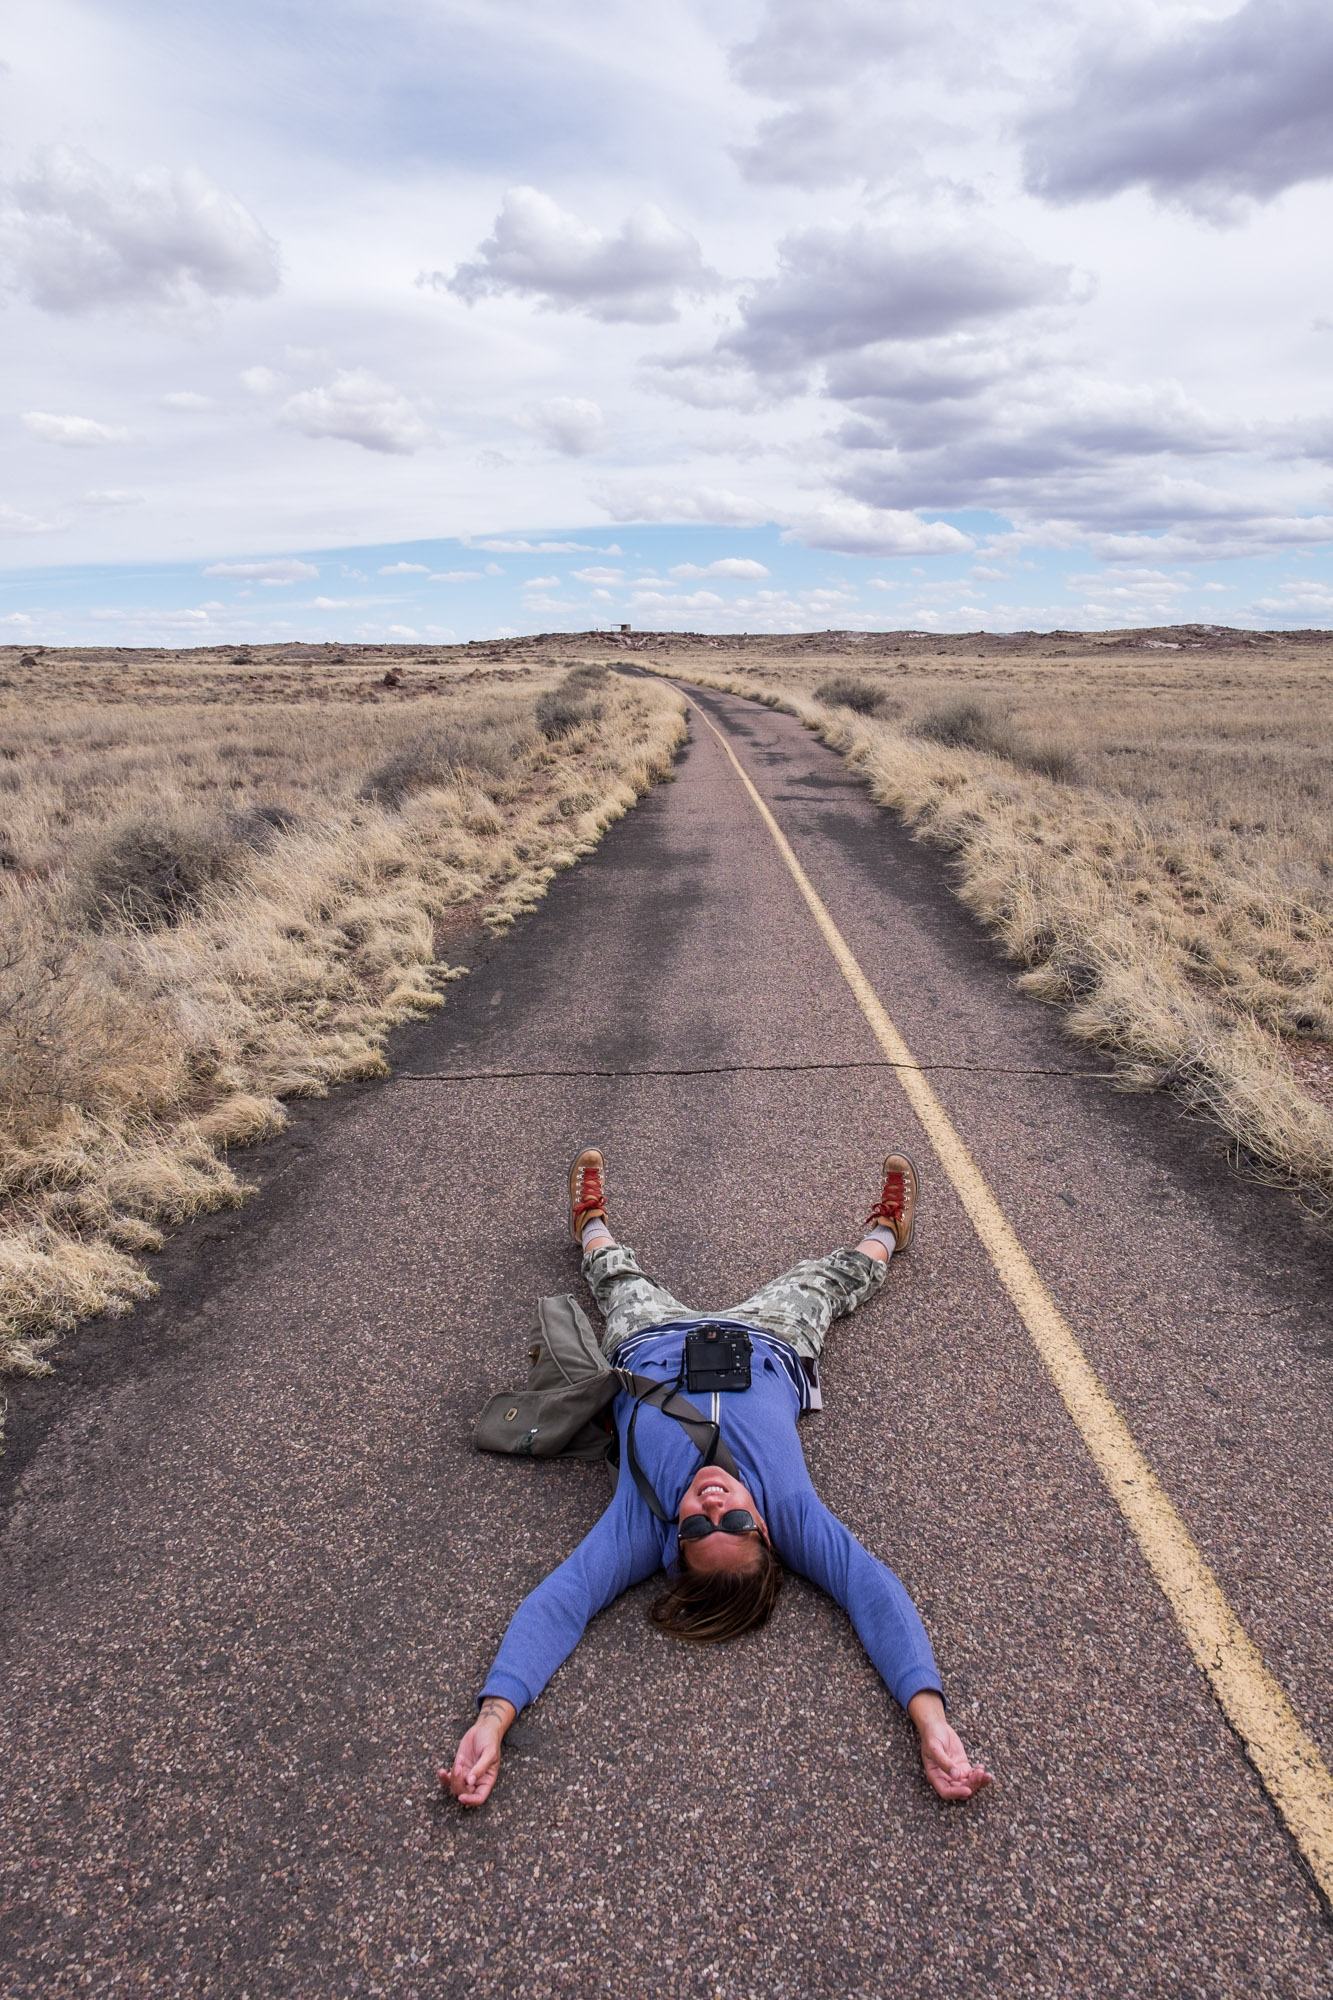 Stef loved the old Route 66 road so much, she decided to lay right down. I think she is trying to hear the rumble of old cars on the road.